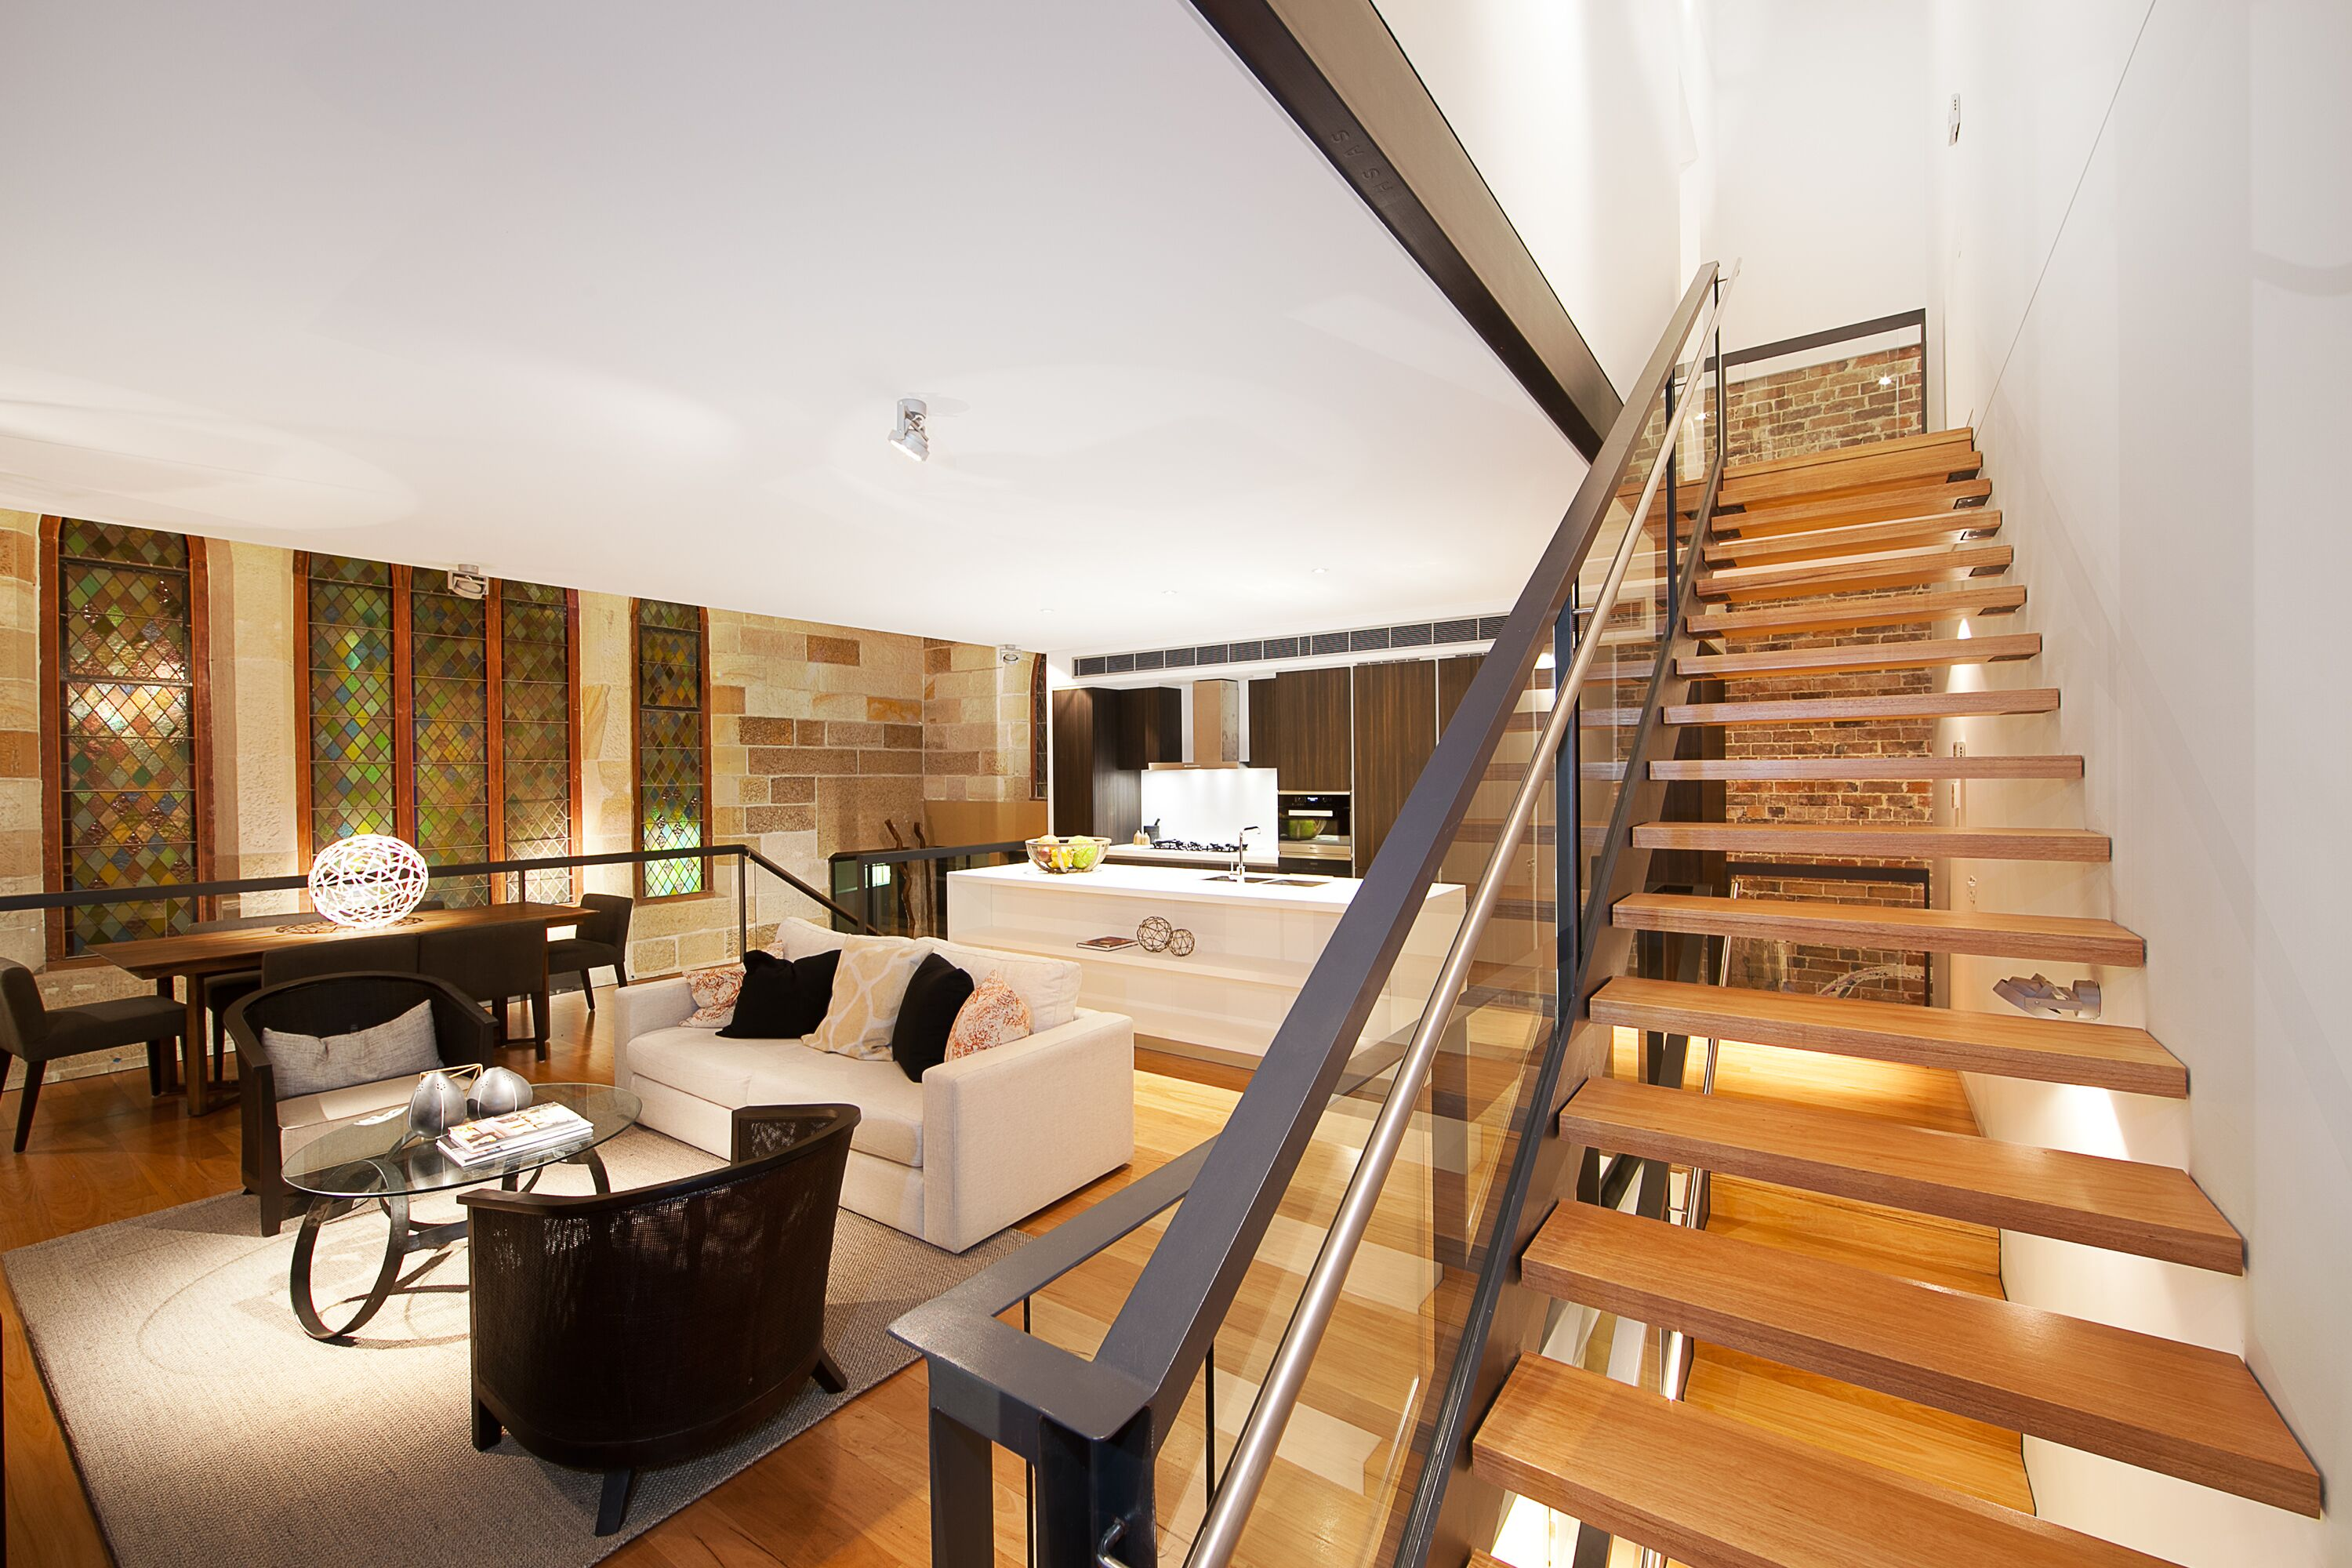 Stairwell and lounge area with lighting fitouts and electrical work